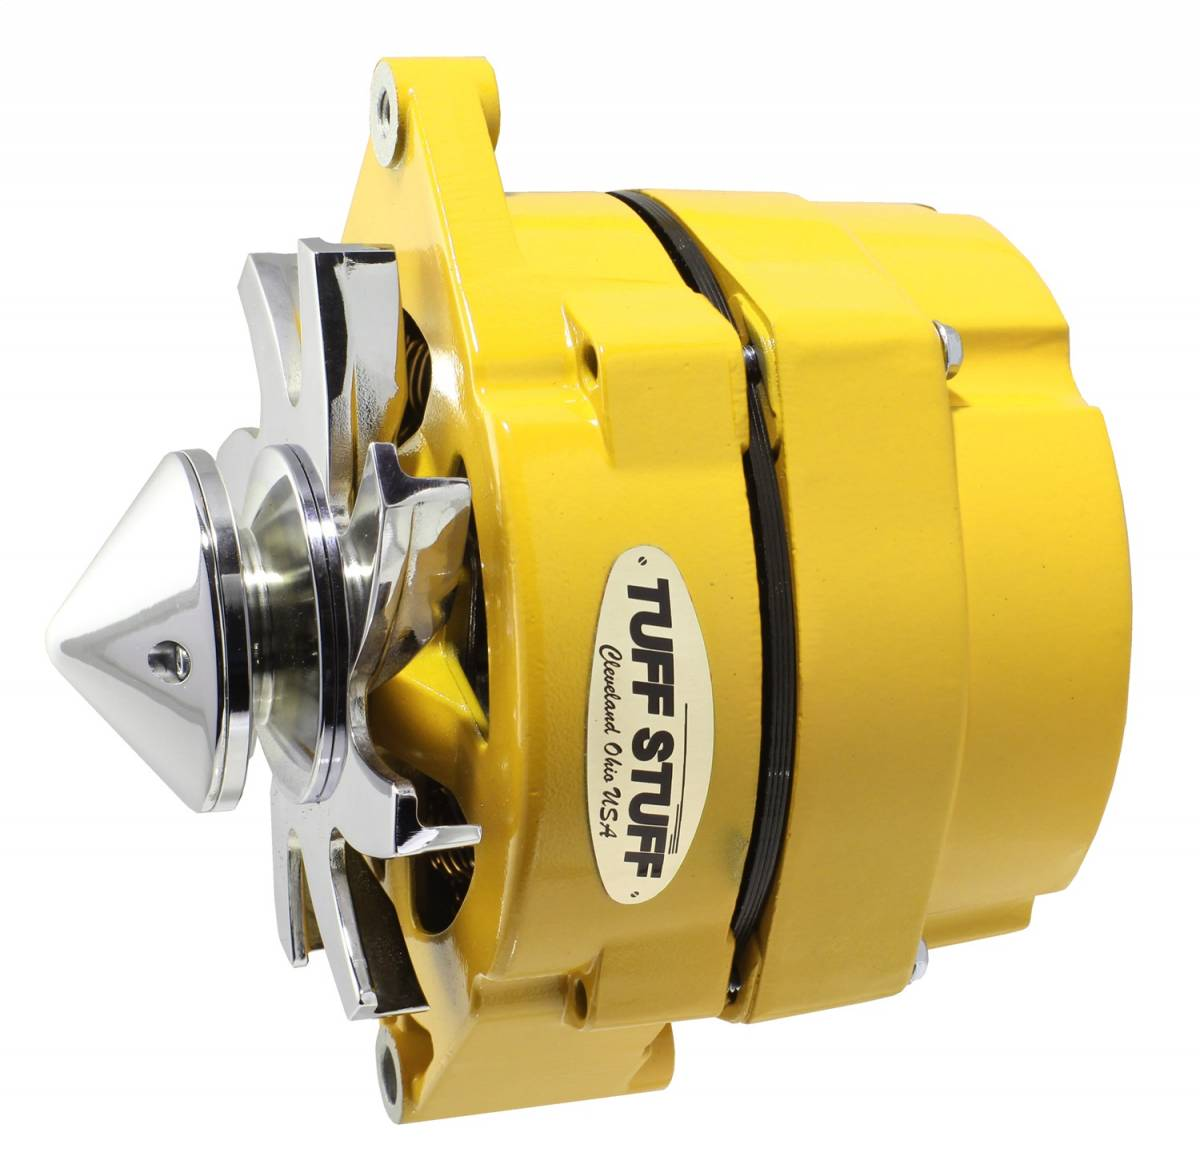 Tuff Stuff Performance - Silver Bullet Alternator 100 AMP OEM Or 1 Wire V Groove Bullet Pulley 4.85 in. Case Depth Lower Mount Boss 2 in. Long Yellow Powdercoat w/Chrome Accents 7139FBULLY